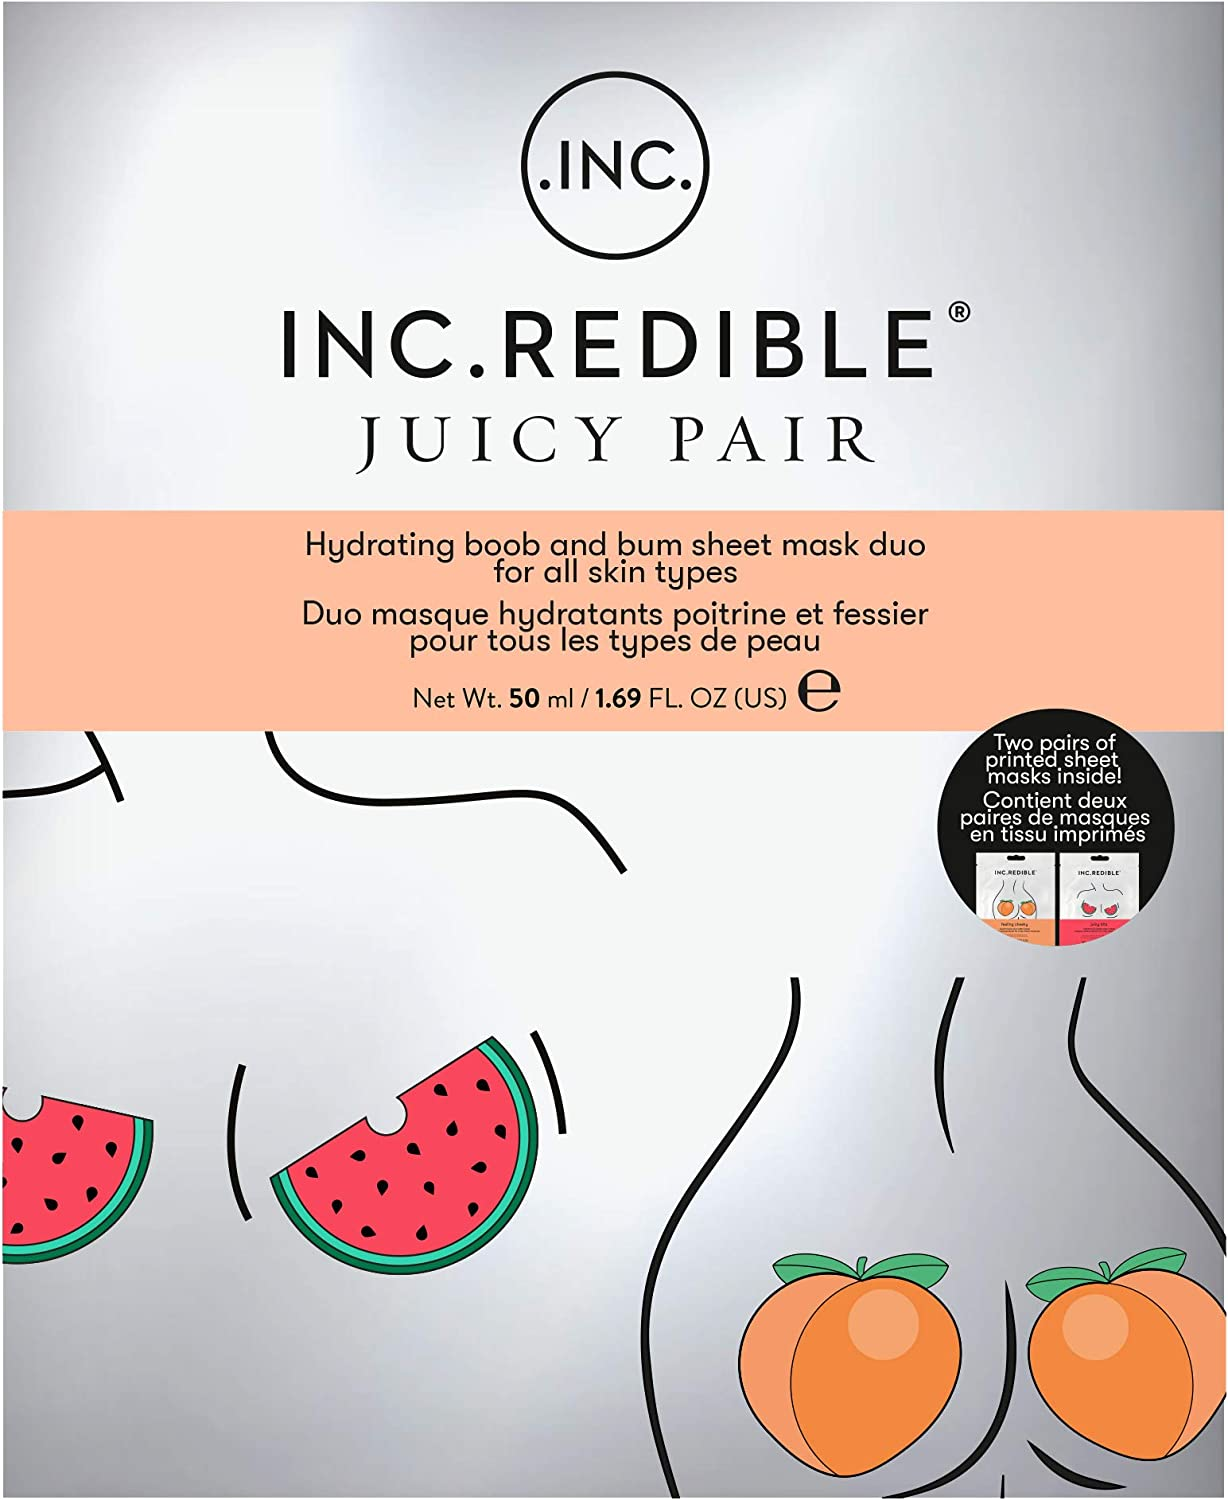 INC.redible Juicy Pair Boob and Bum Mask Duo